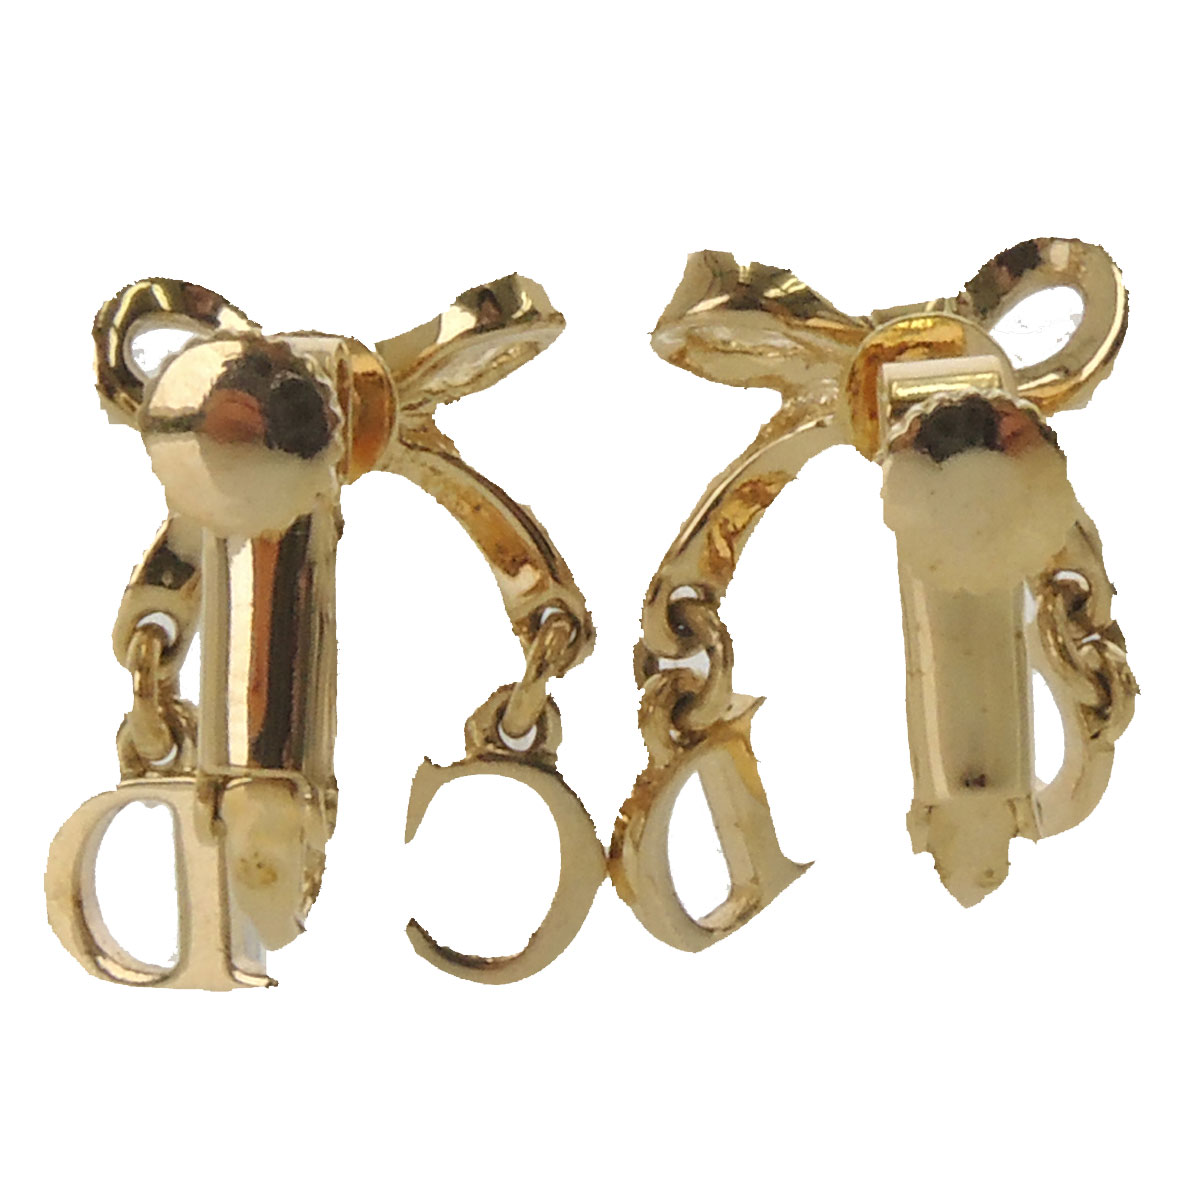 CHRISTIAN DIOR Ribbon motif earrings metal ladies